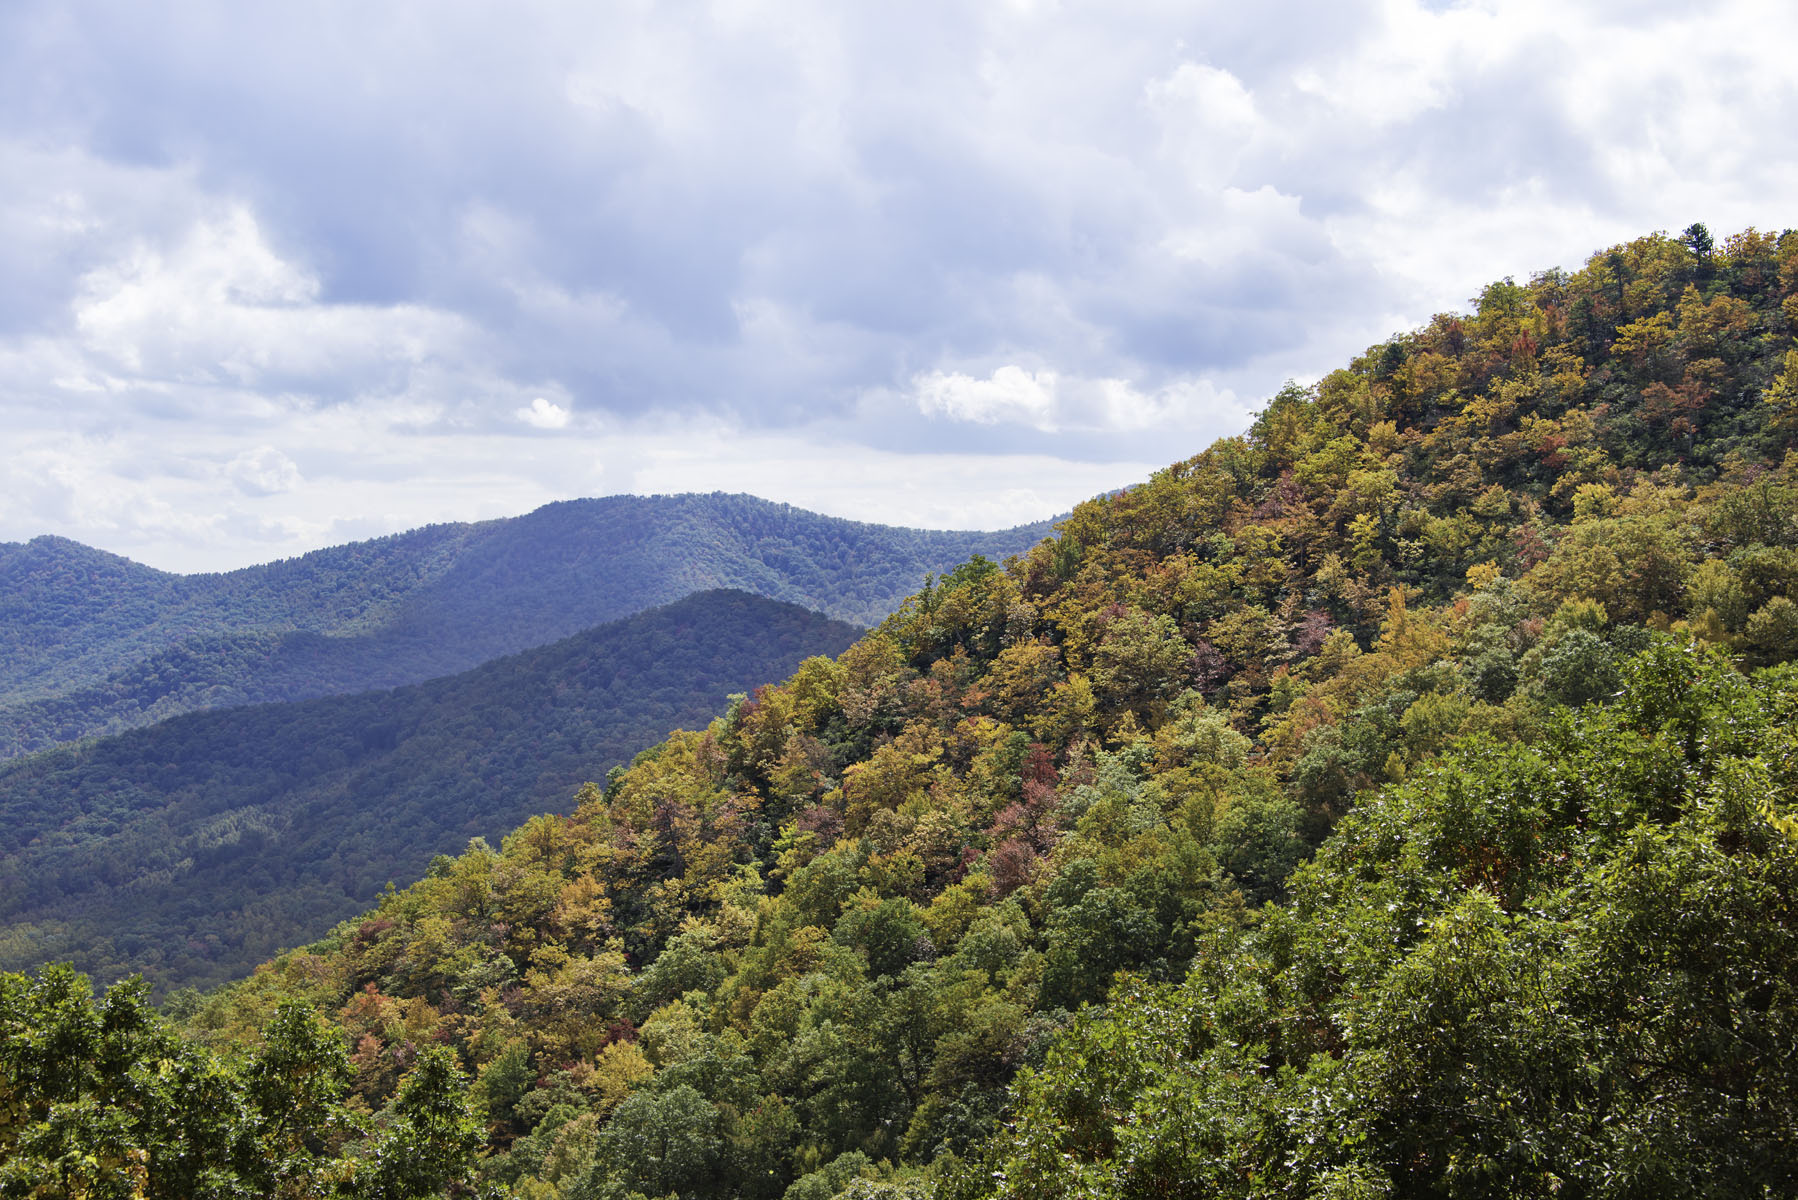 Close Up of Fall Foliage in Smoky Mountains on Blue Ridge Parkway